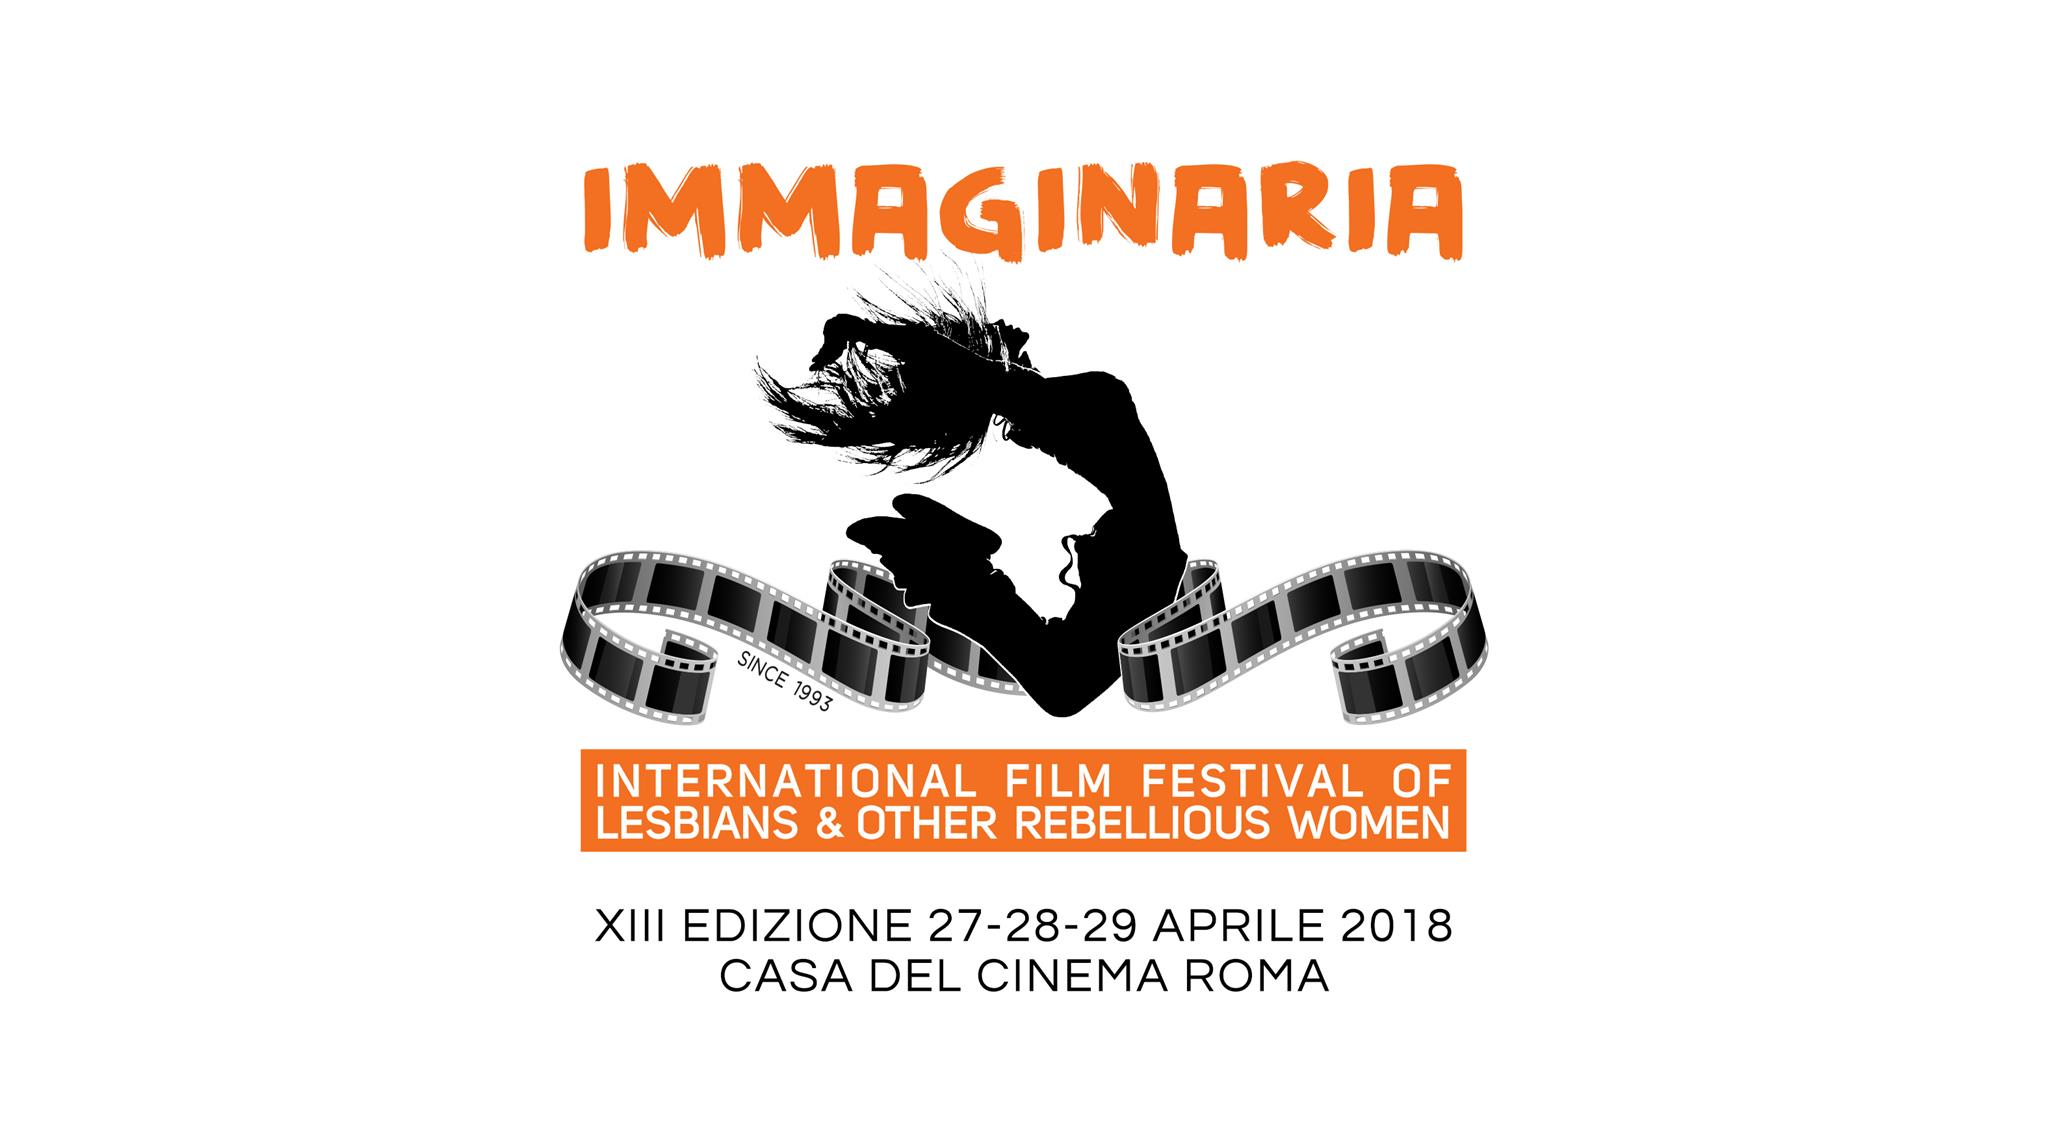 IMMAGINARIA International Film Festival Of Lesbians & Other Rebellious Women